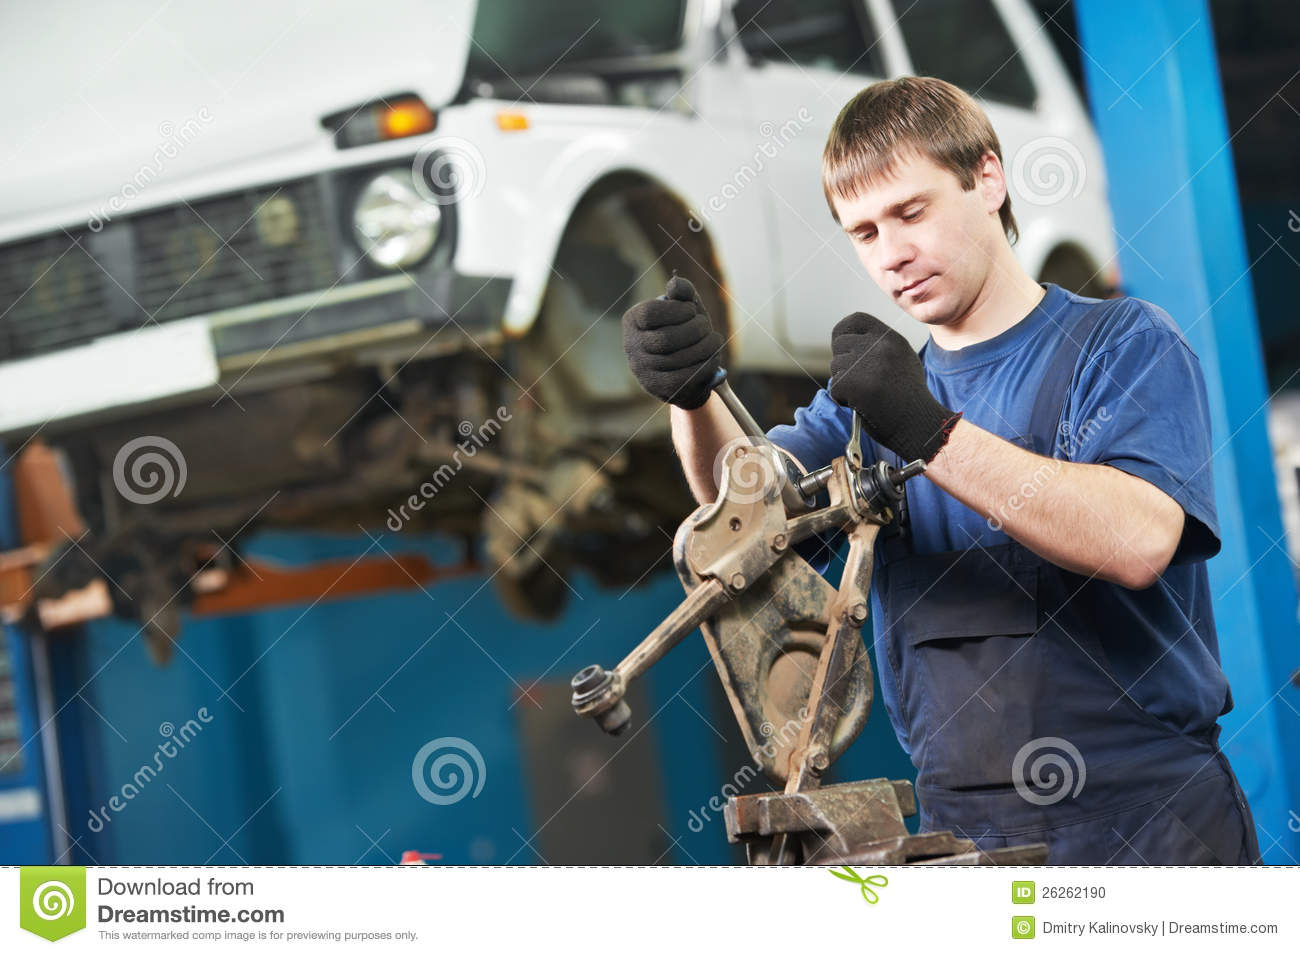 Car Repair And Maintenance >> Auto Mechanic At Work With Wrench Spanner Stock Photo - Image of adjustment, check: 26262190